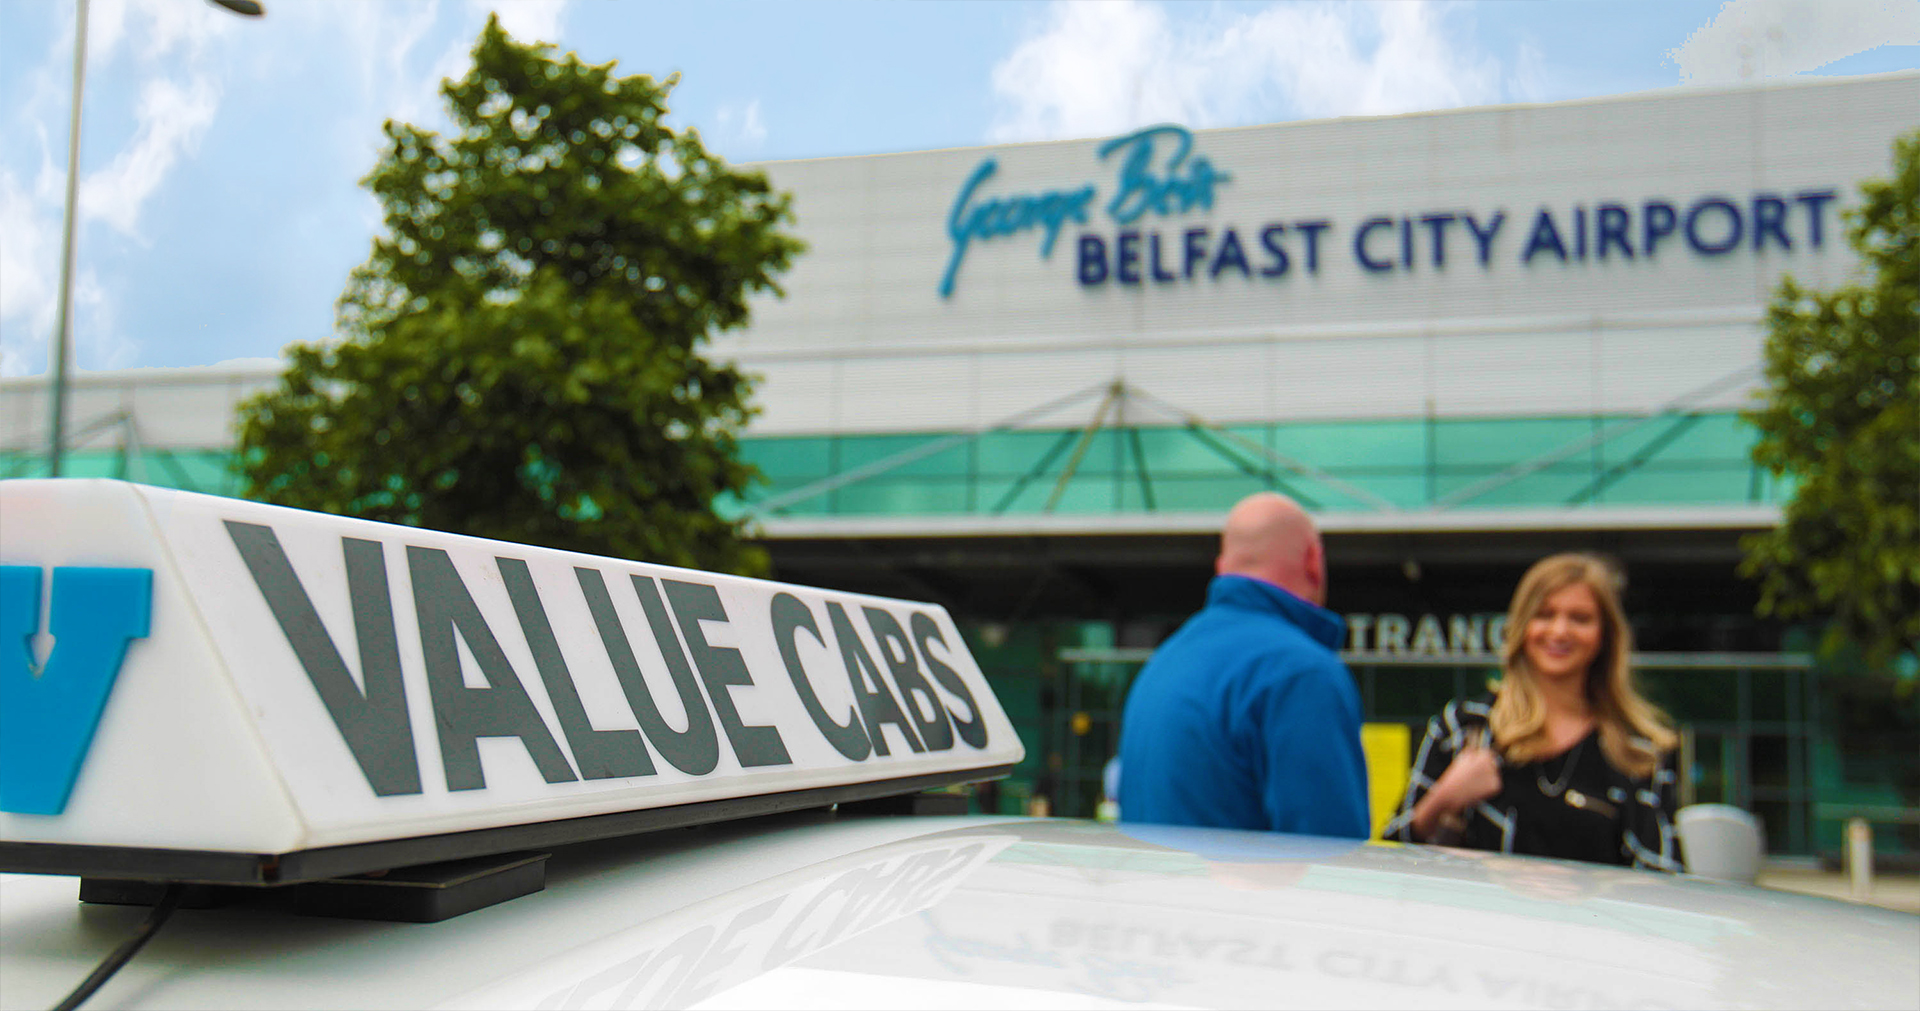 Value Cabs at Belfast City Airport